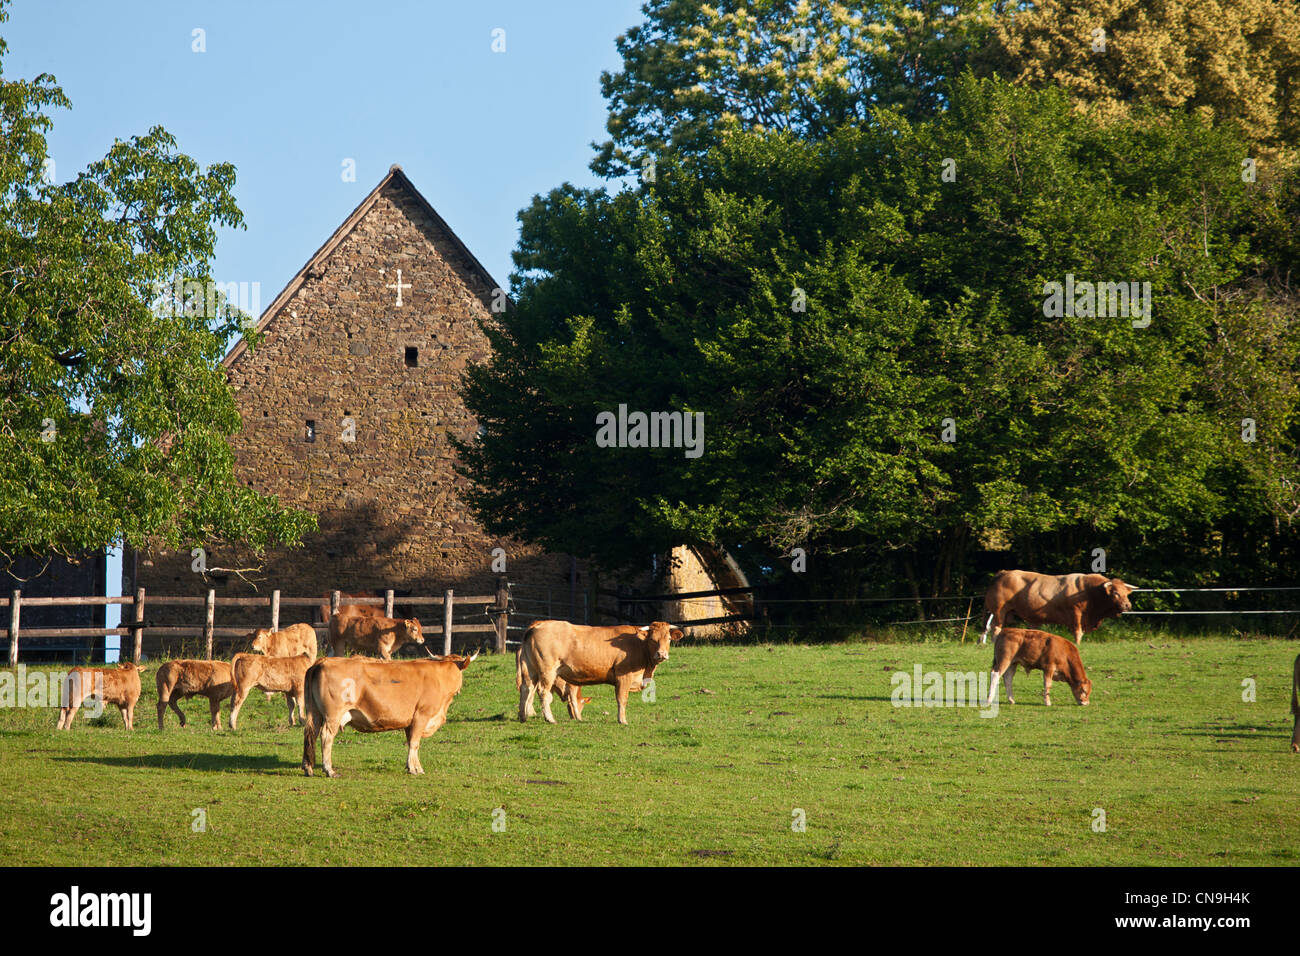 France, Correze, near Uzerche breeding Limousin cattle - Stock Image